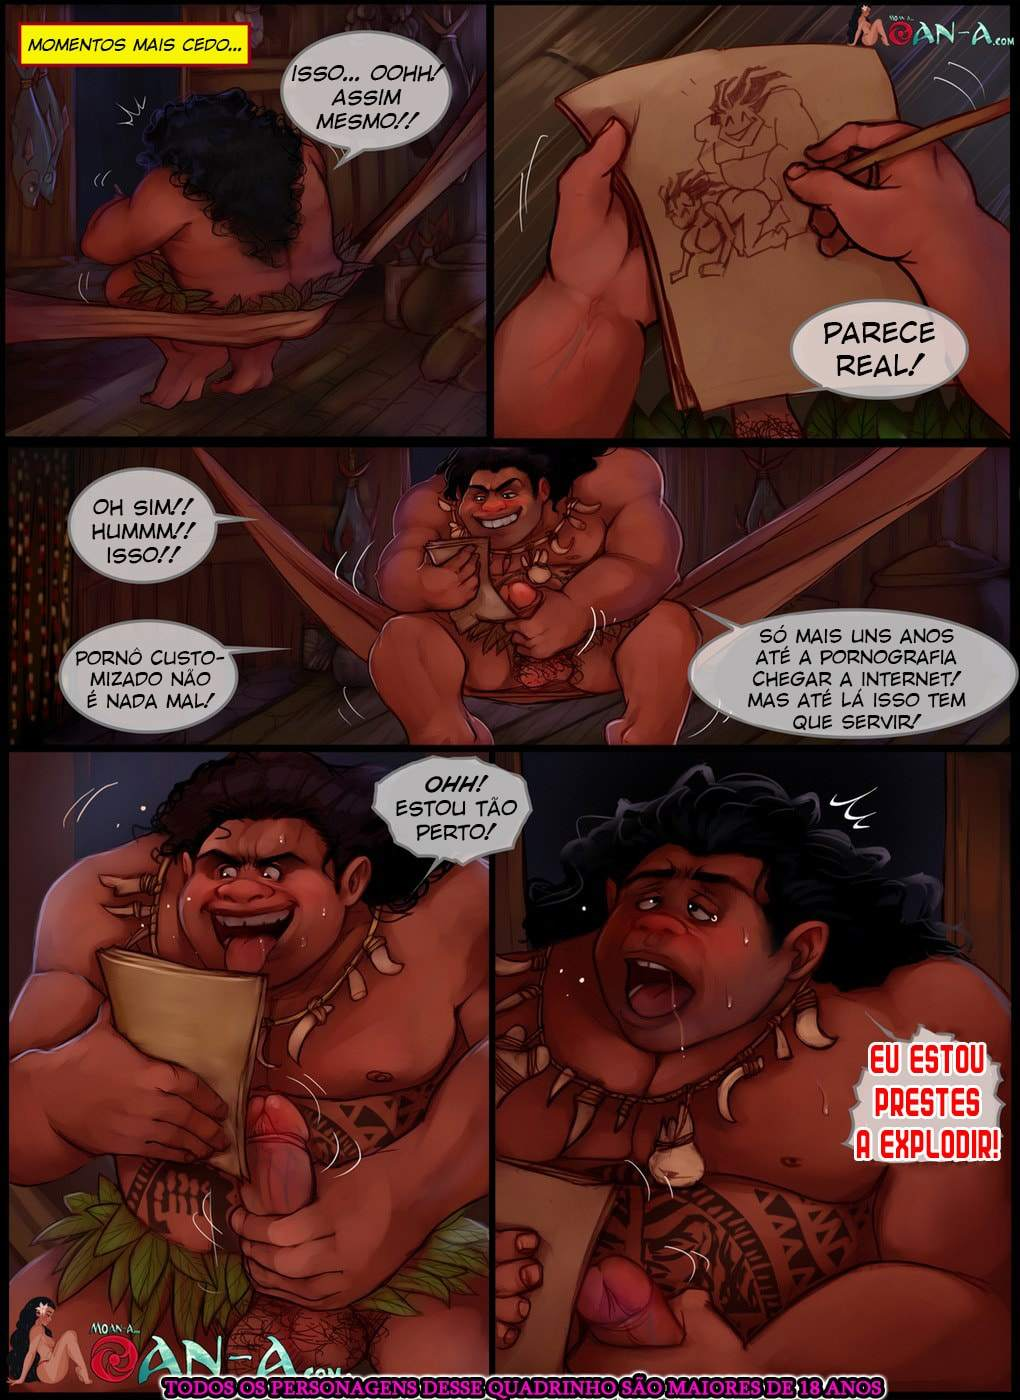 Moan part 2 Chesare Disney The Hentai 07 - hentai, comics-hq